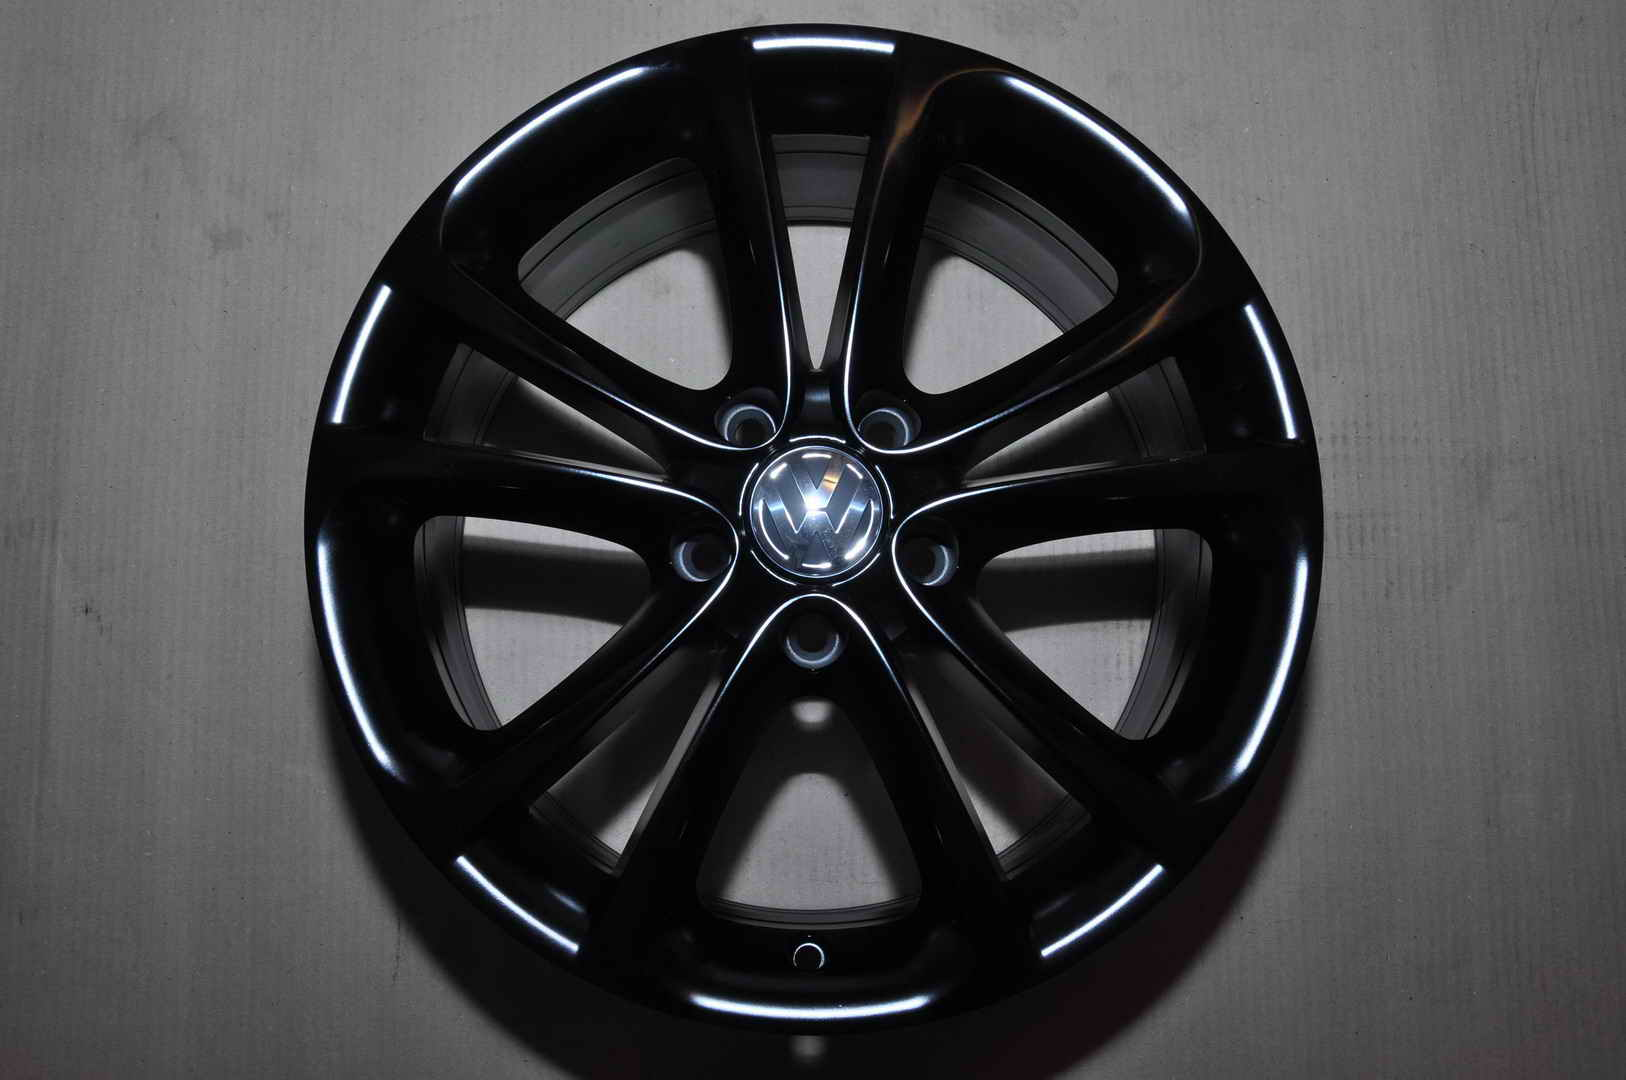 Jante Originale Vw 17 inch ET41 SPA 3C0601025K 12